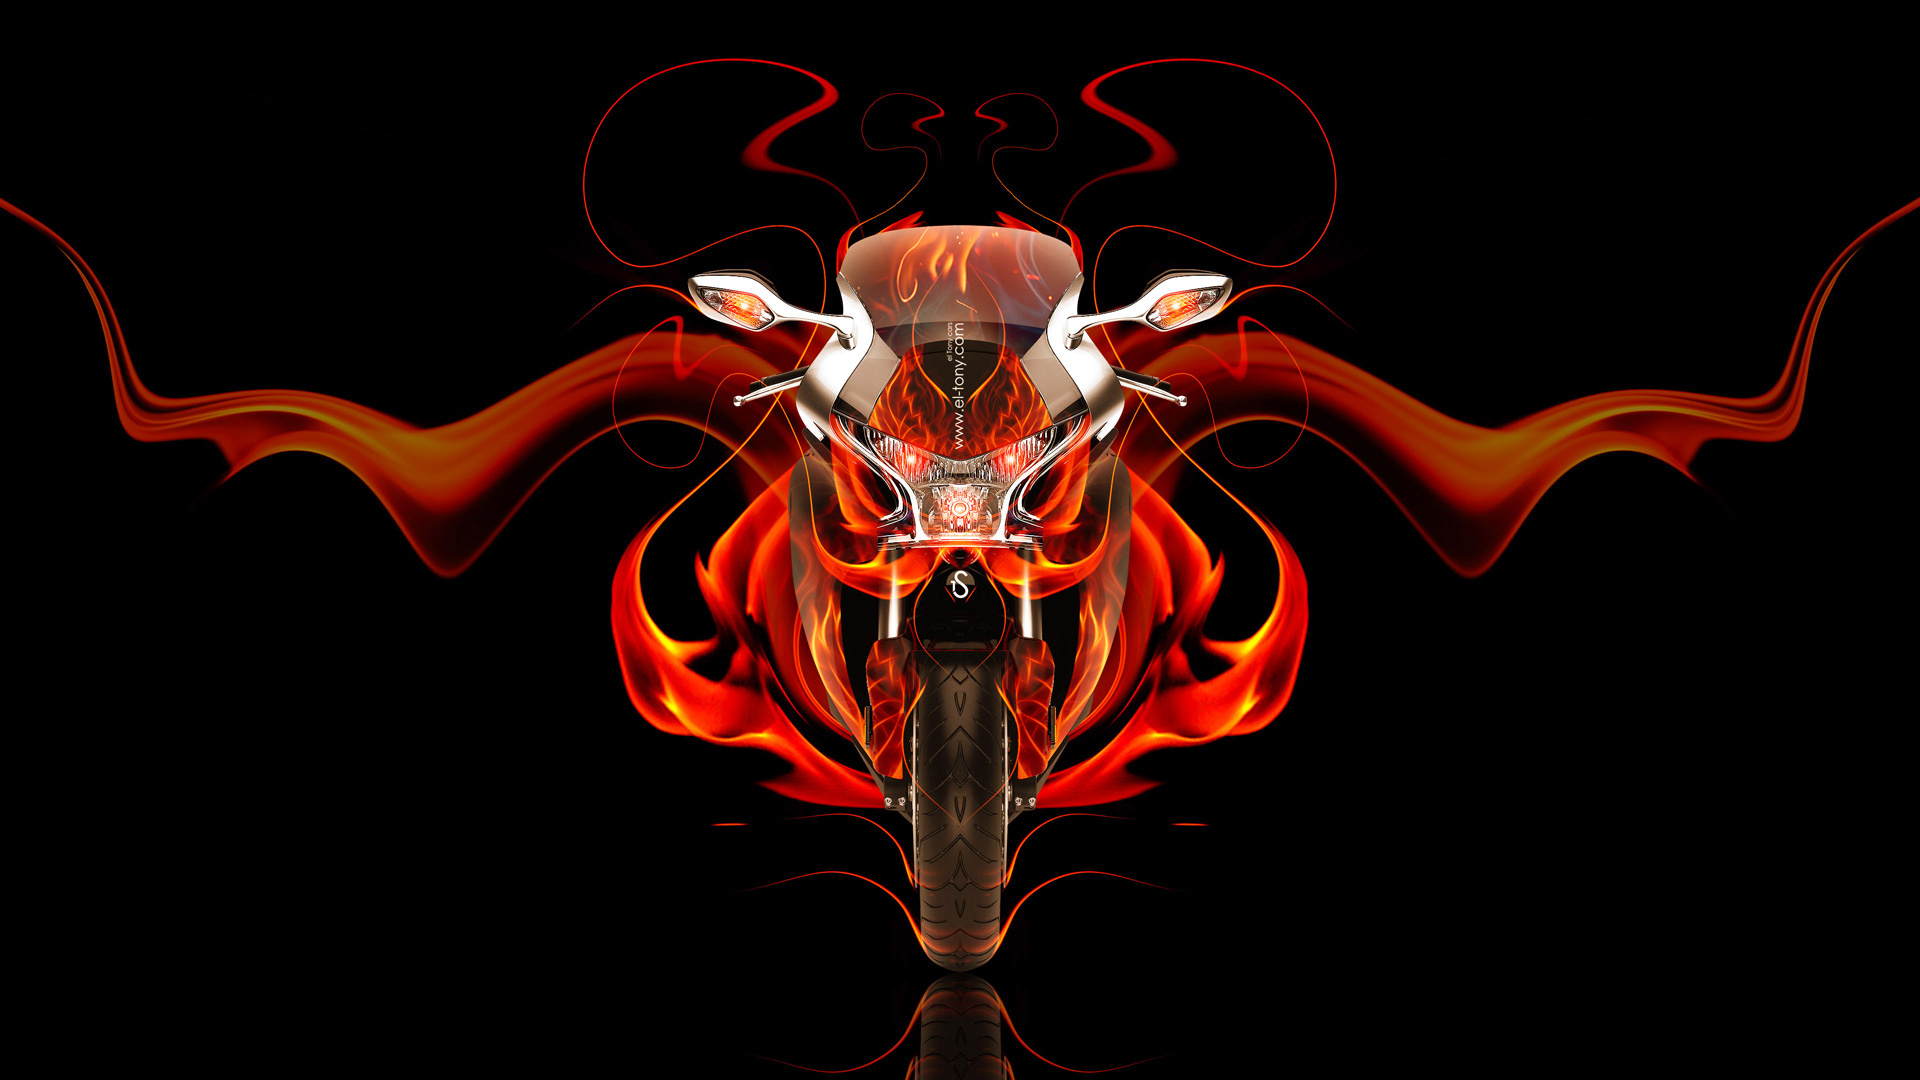 Wallpaper Motorcycles Photo Picture Tony Kokhan